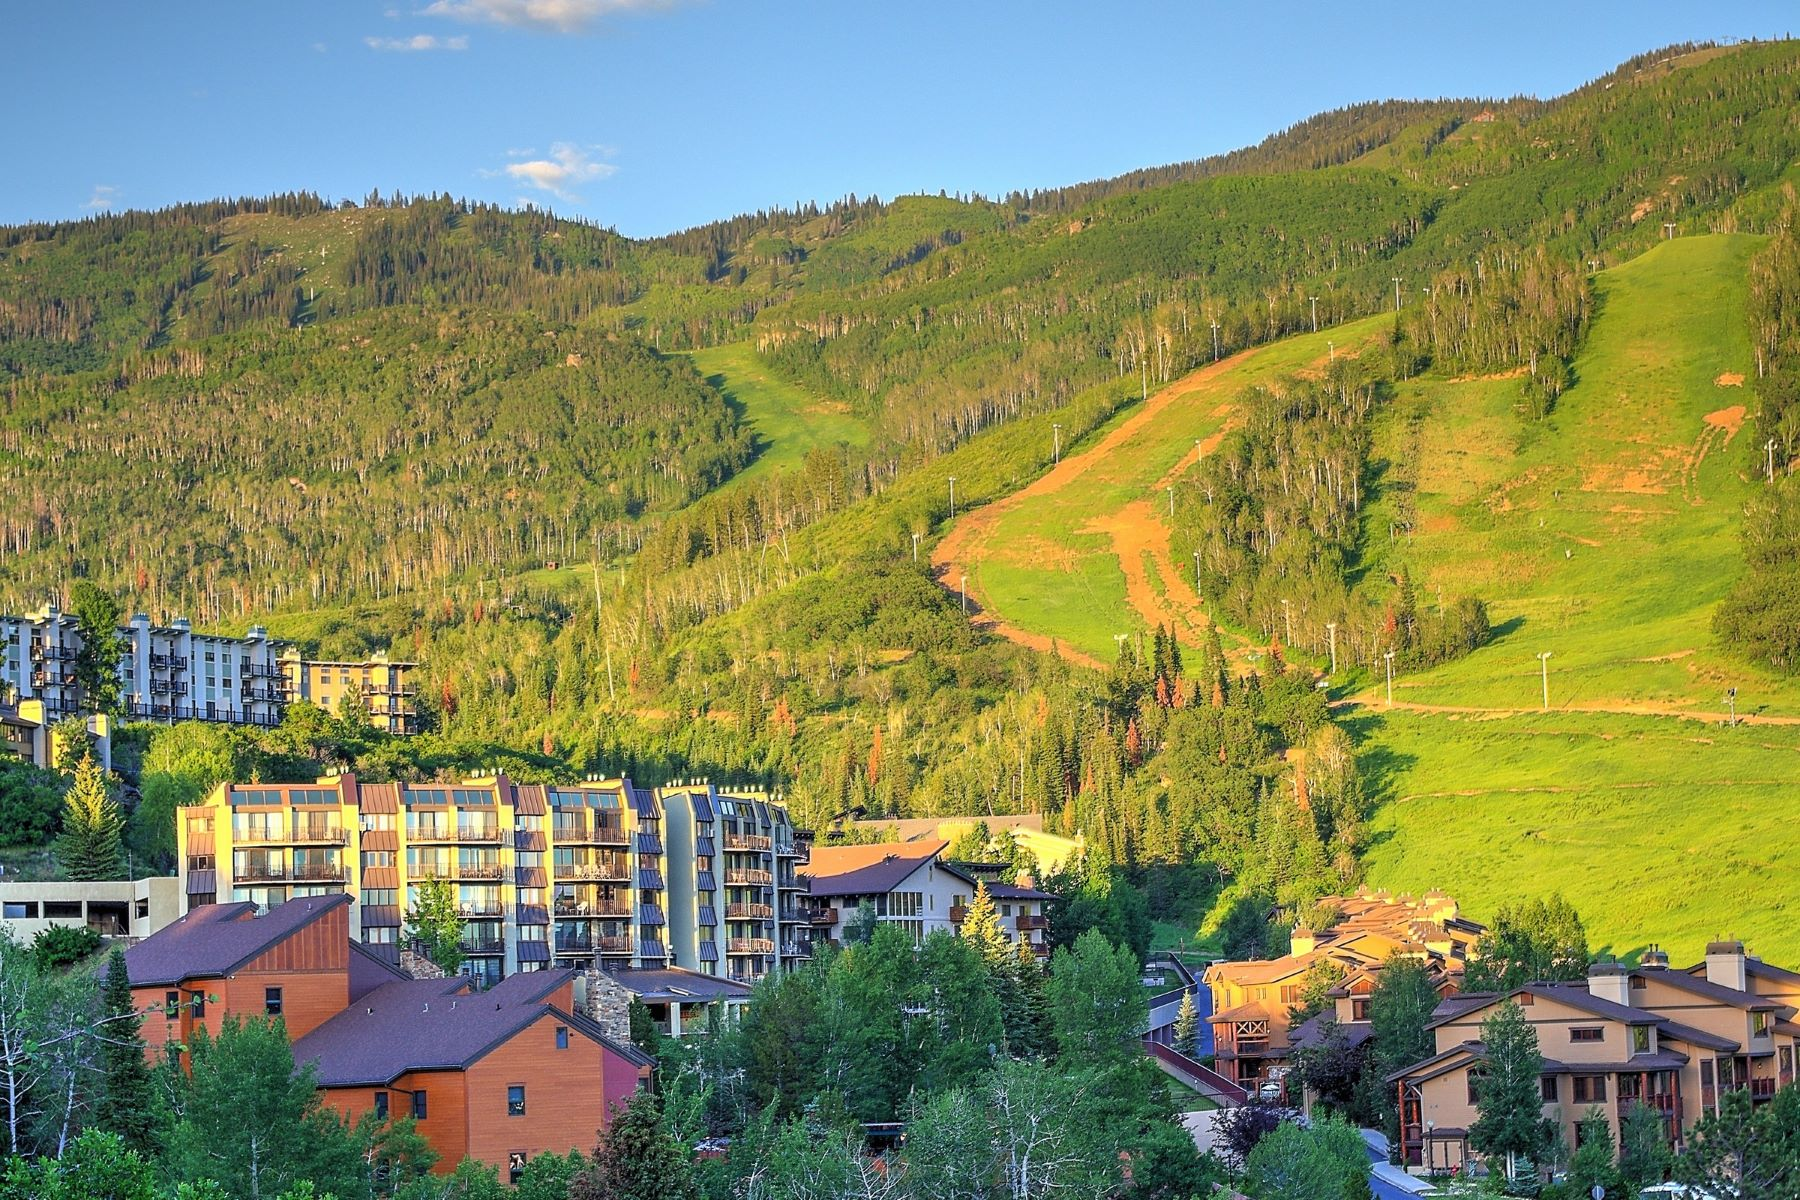 Кондоминиум для того Продажа на Ski-In/Ski-Out Bronze Tree Unit 1995 Storm Meadows Drive Unit 207, Steamboat Springs, Колорадо, 80487 Соединенные Штаты